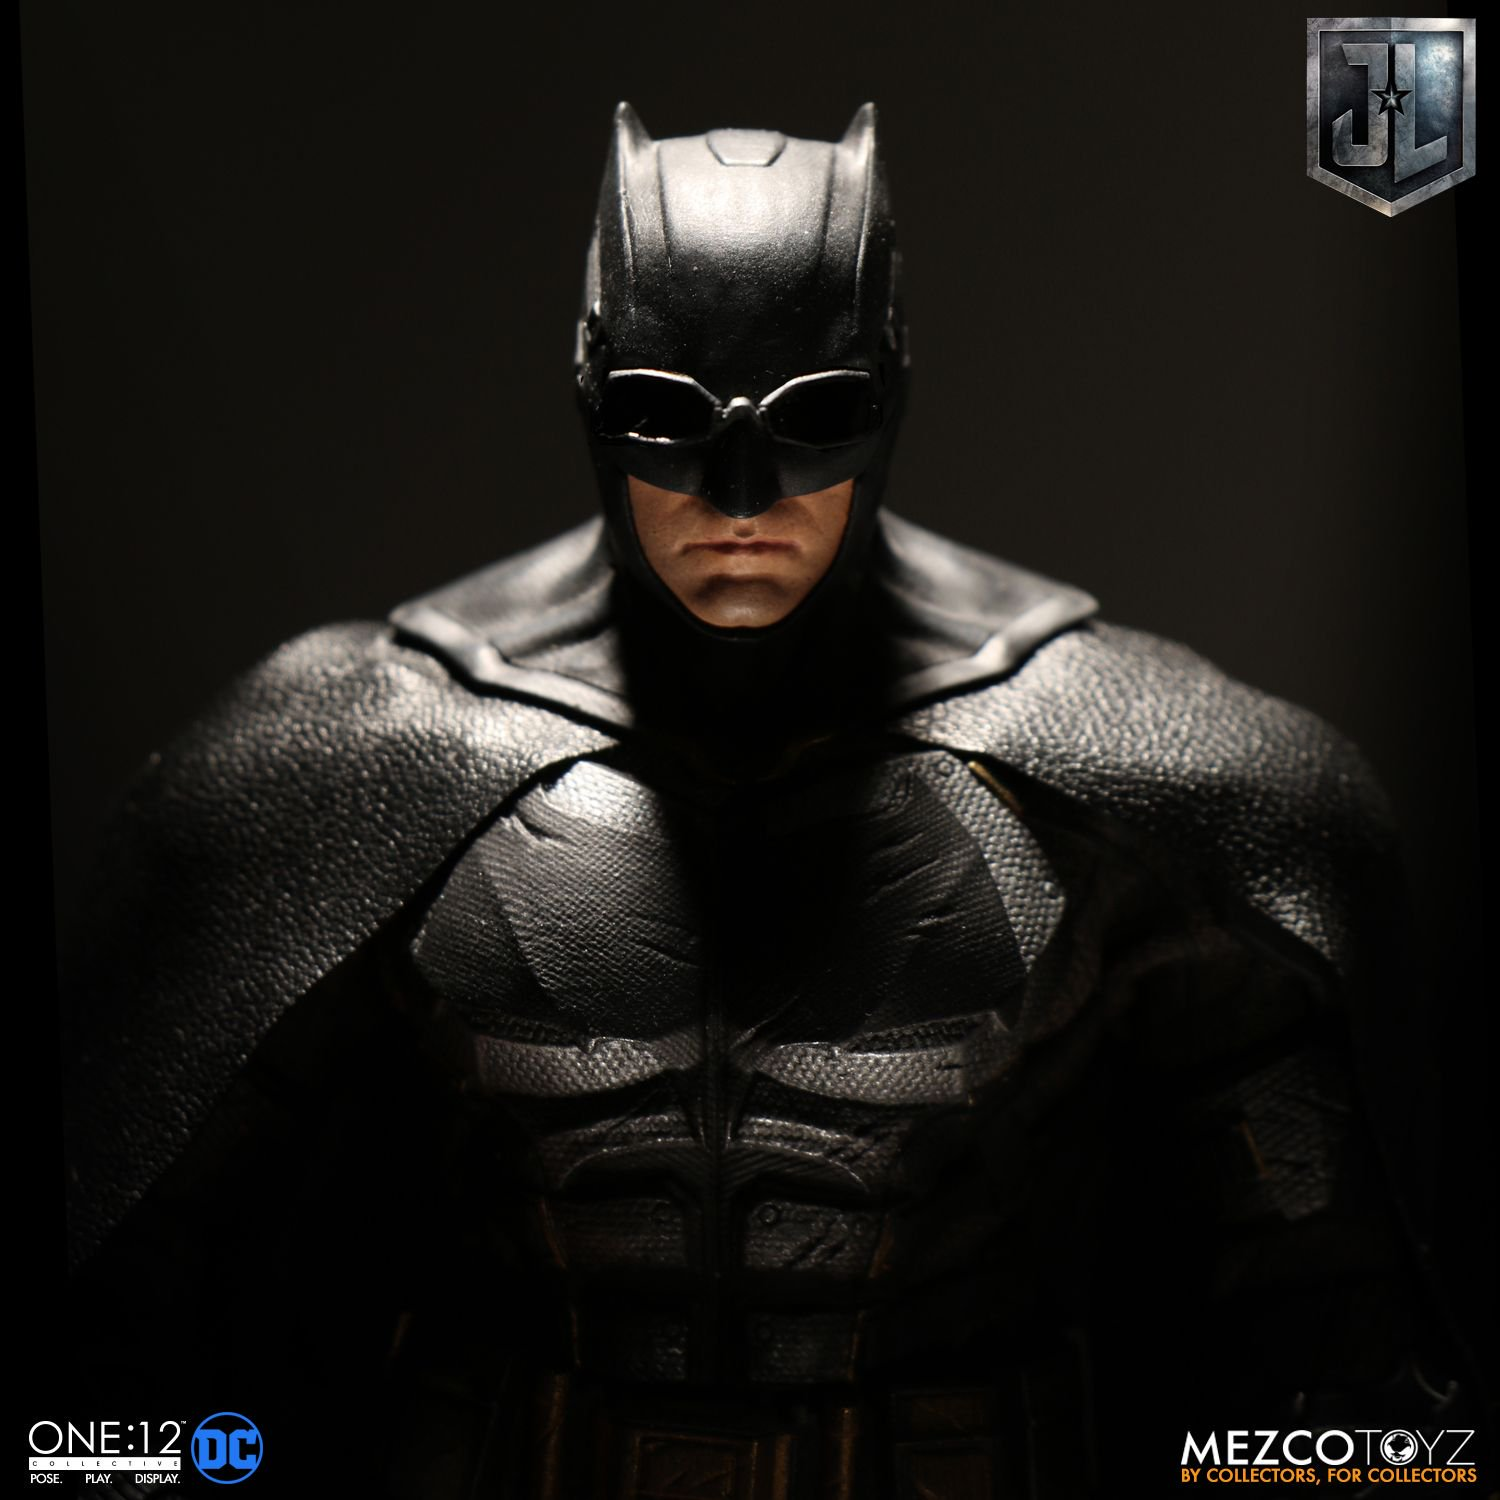 Mezco-Tactical-Suit-Batman-014